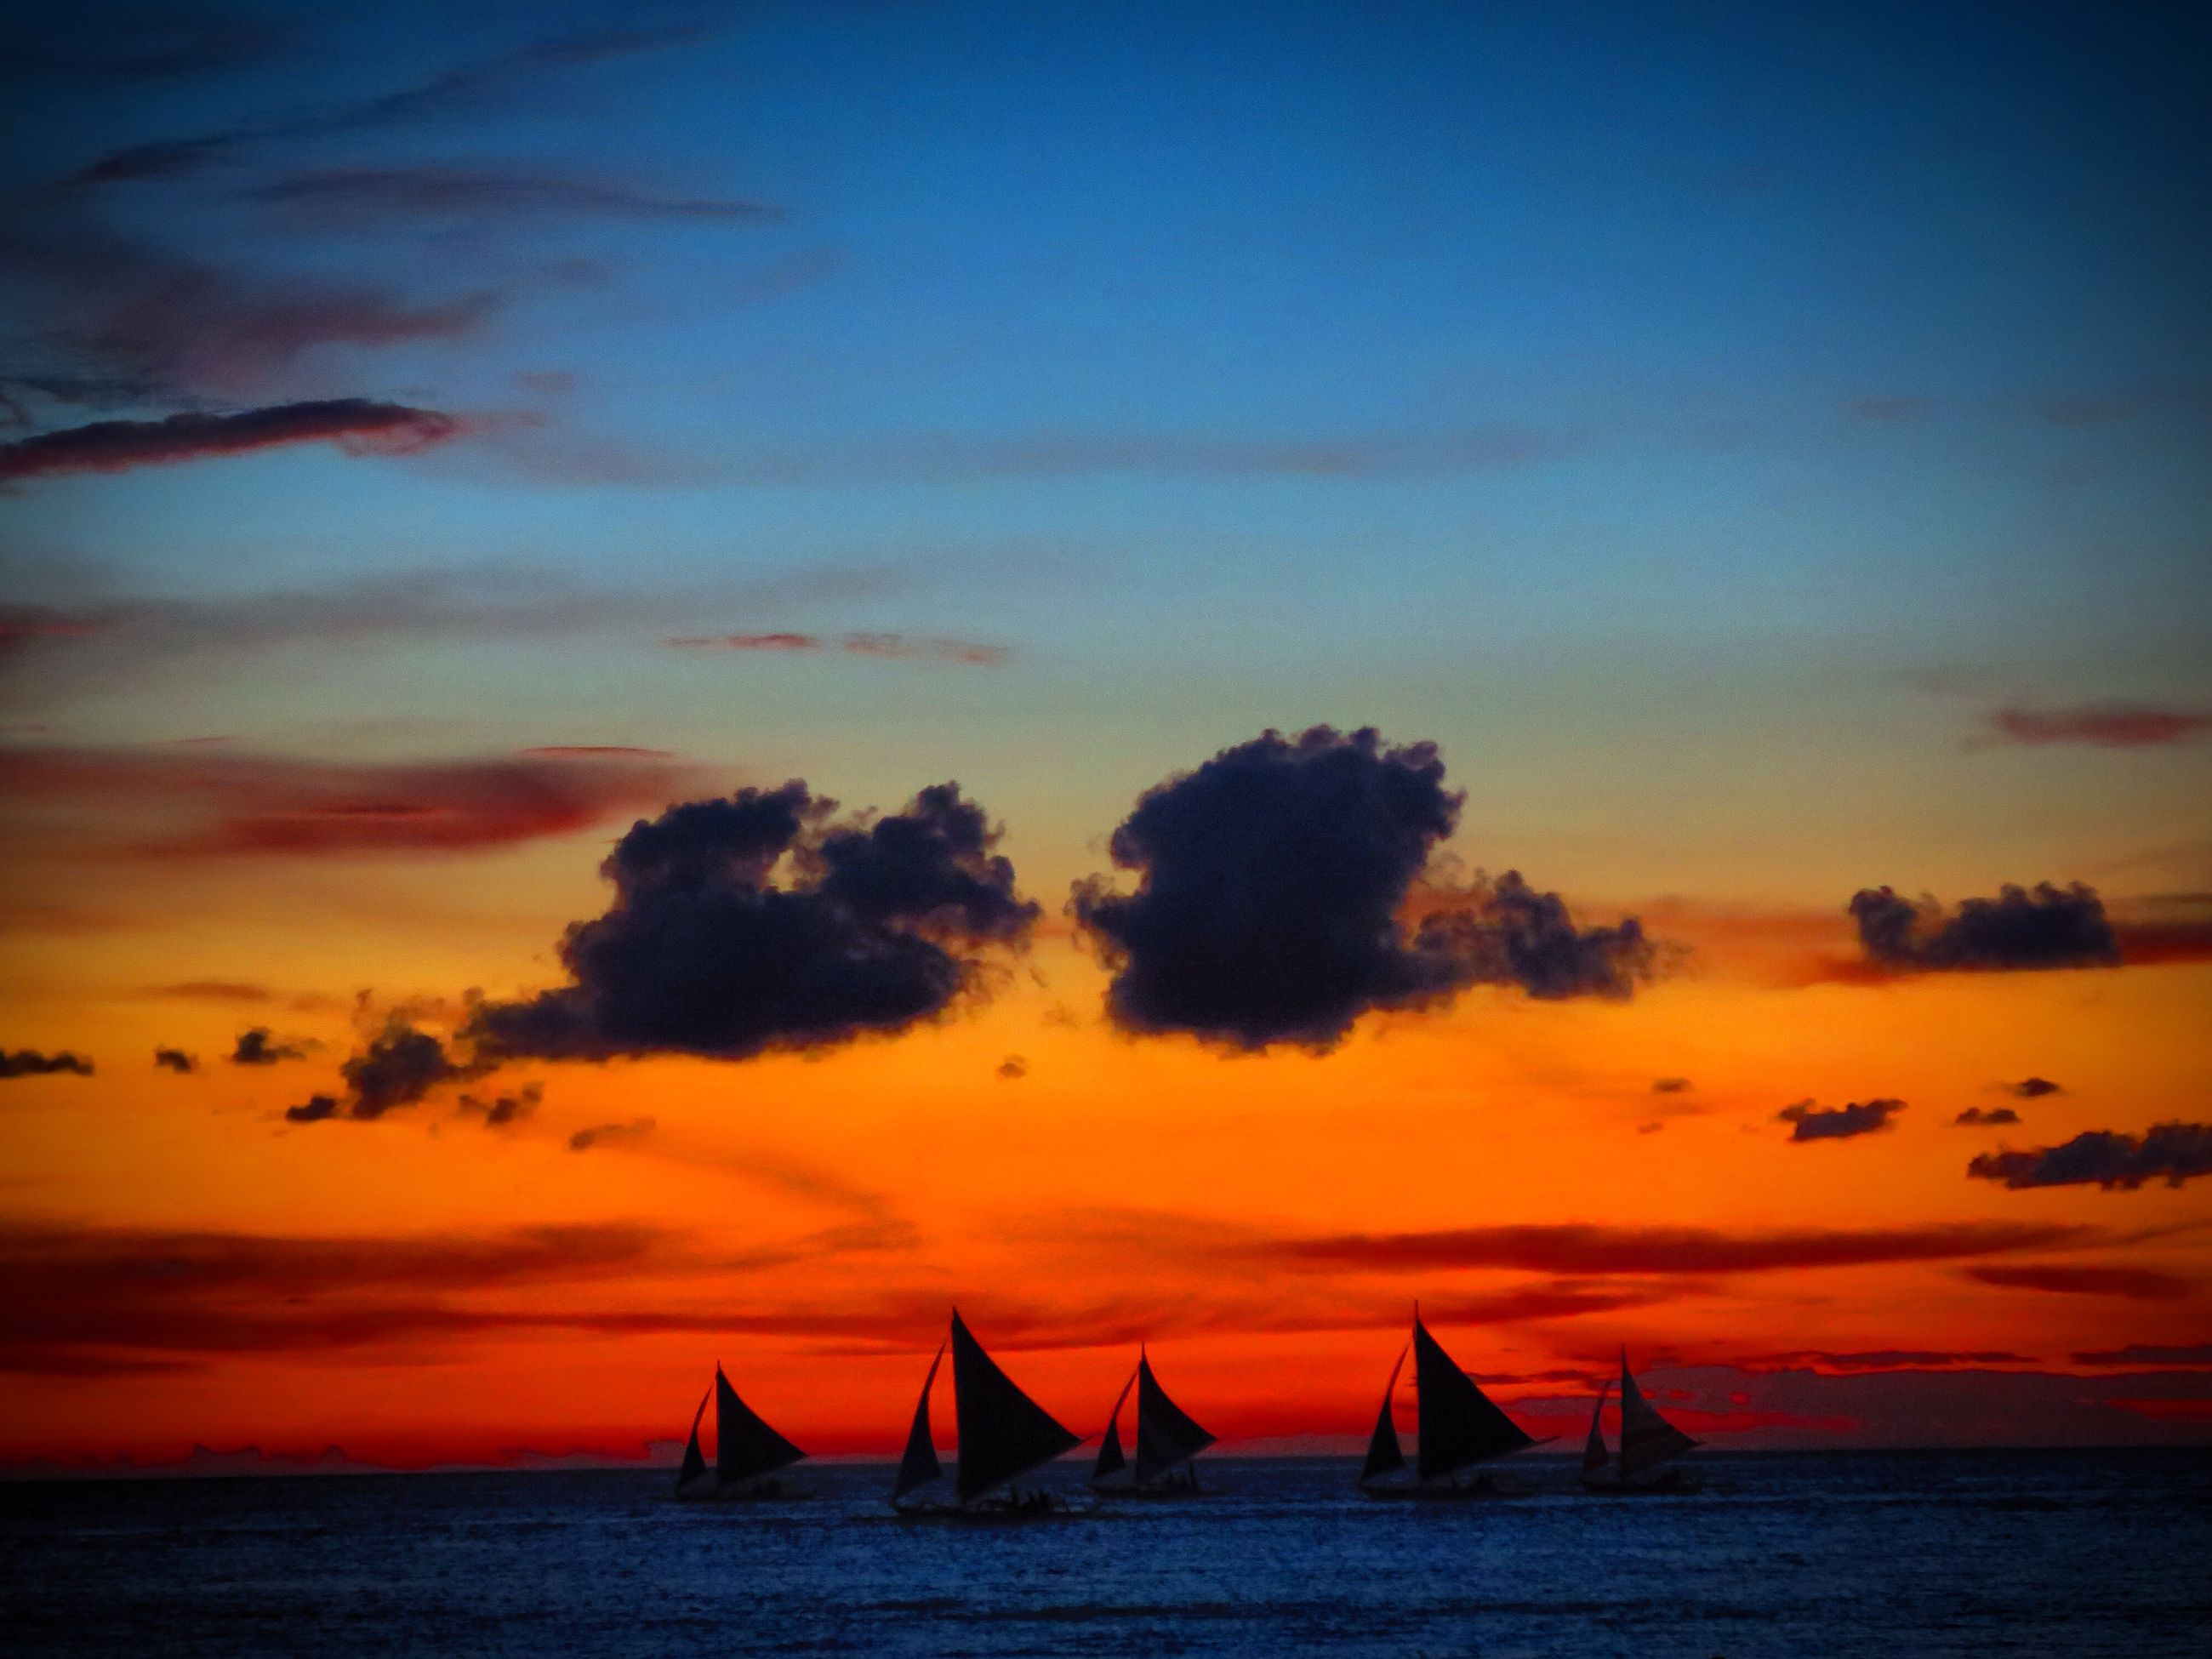 sunset, sea, water, orange color, waterfront, nautical vessel, scenics, boat, tranquility, beauty in nature, tranquil scene, sky, transportation, horizon over water, mode of transport, idyllic, nature, silhouette, sailboat, outdoors